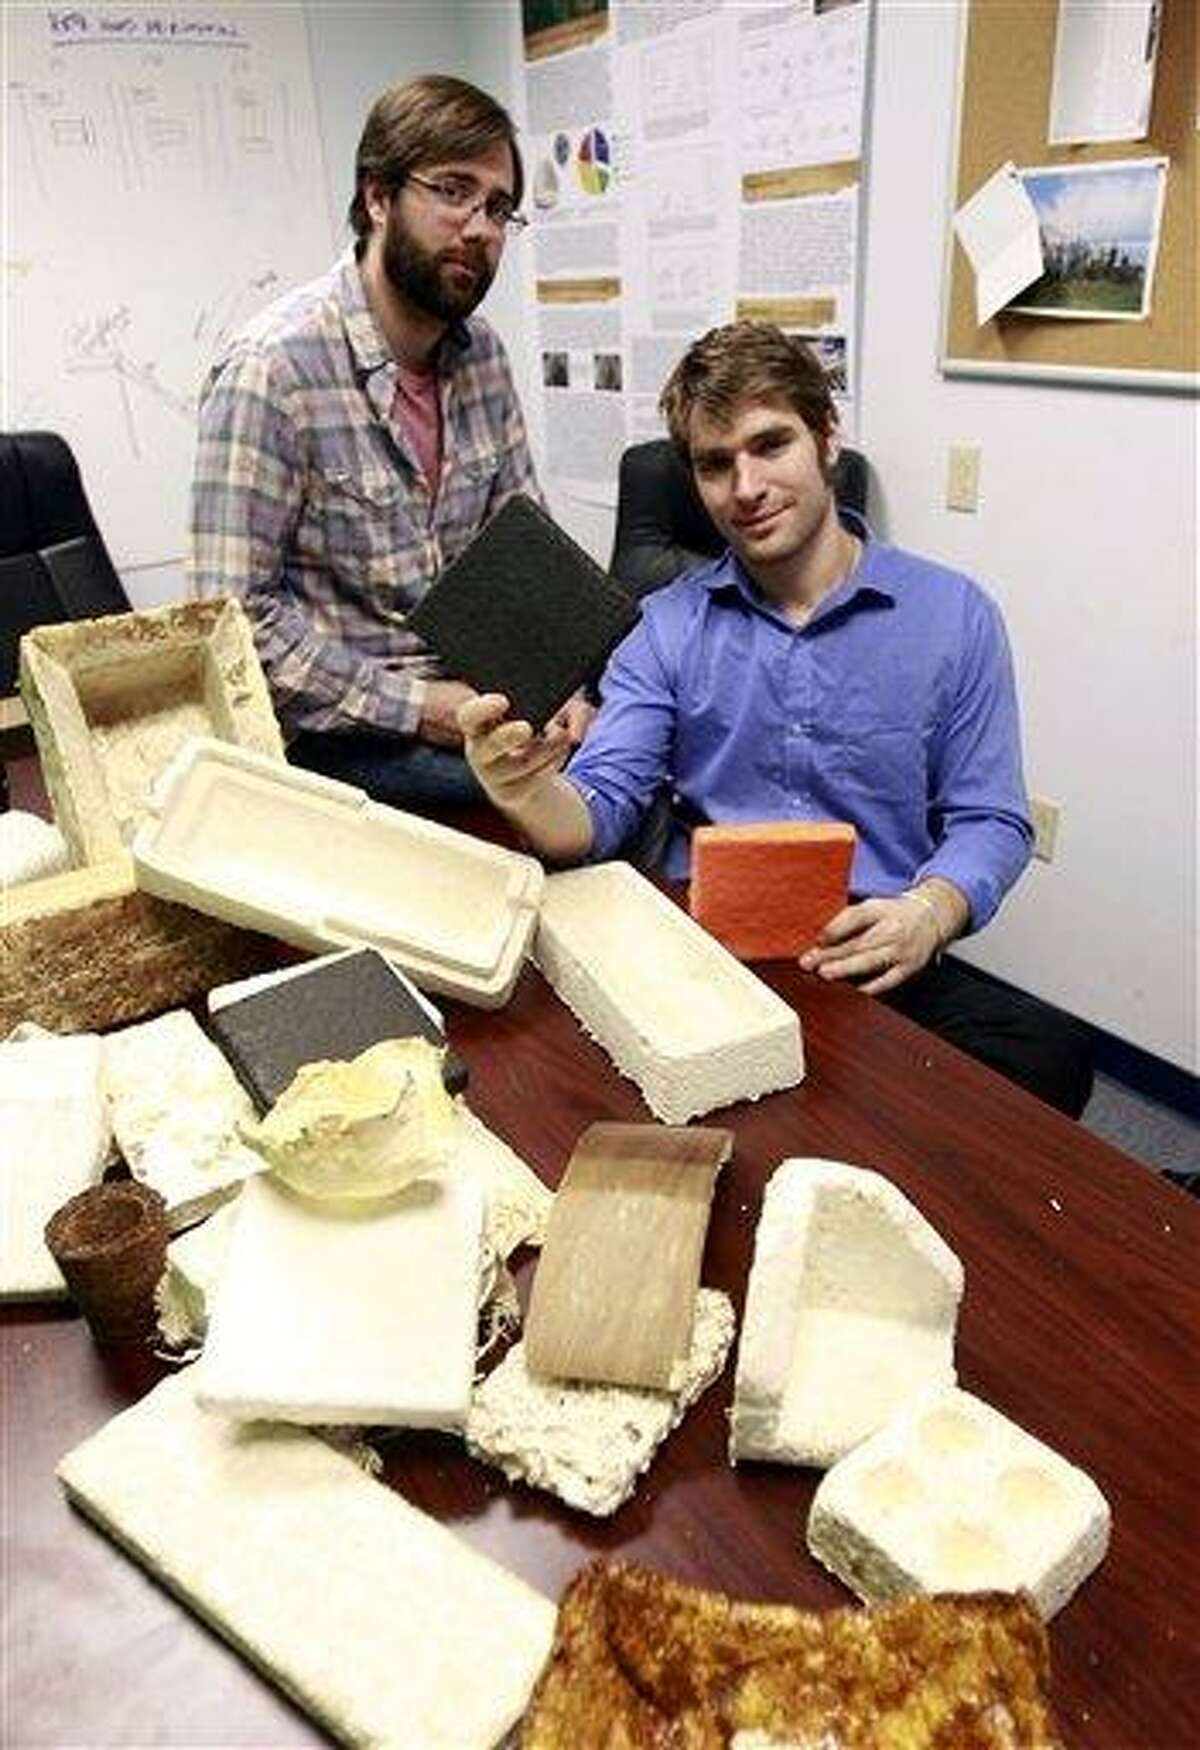 Gavin McIntyre, left, and Eben Bayer, co-founders of Ecovative Design, pose with some of their eco-friendly packaging materials at their company in Green Island, N.Y., Thursday. Associated Press